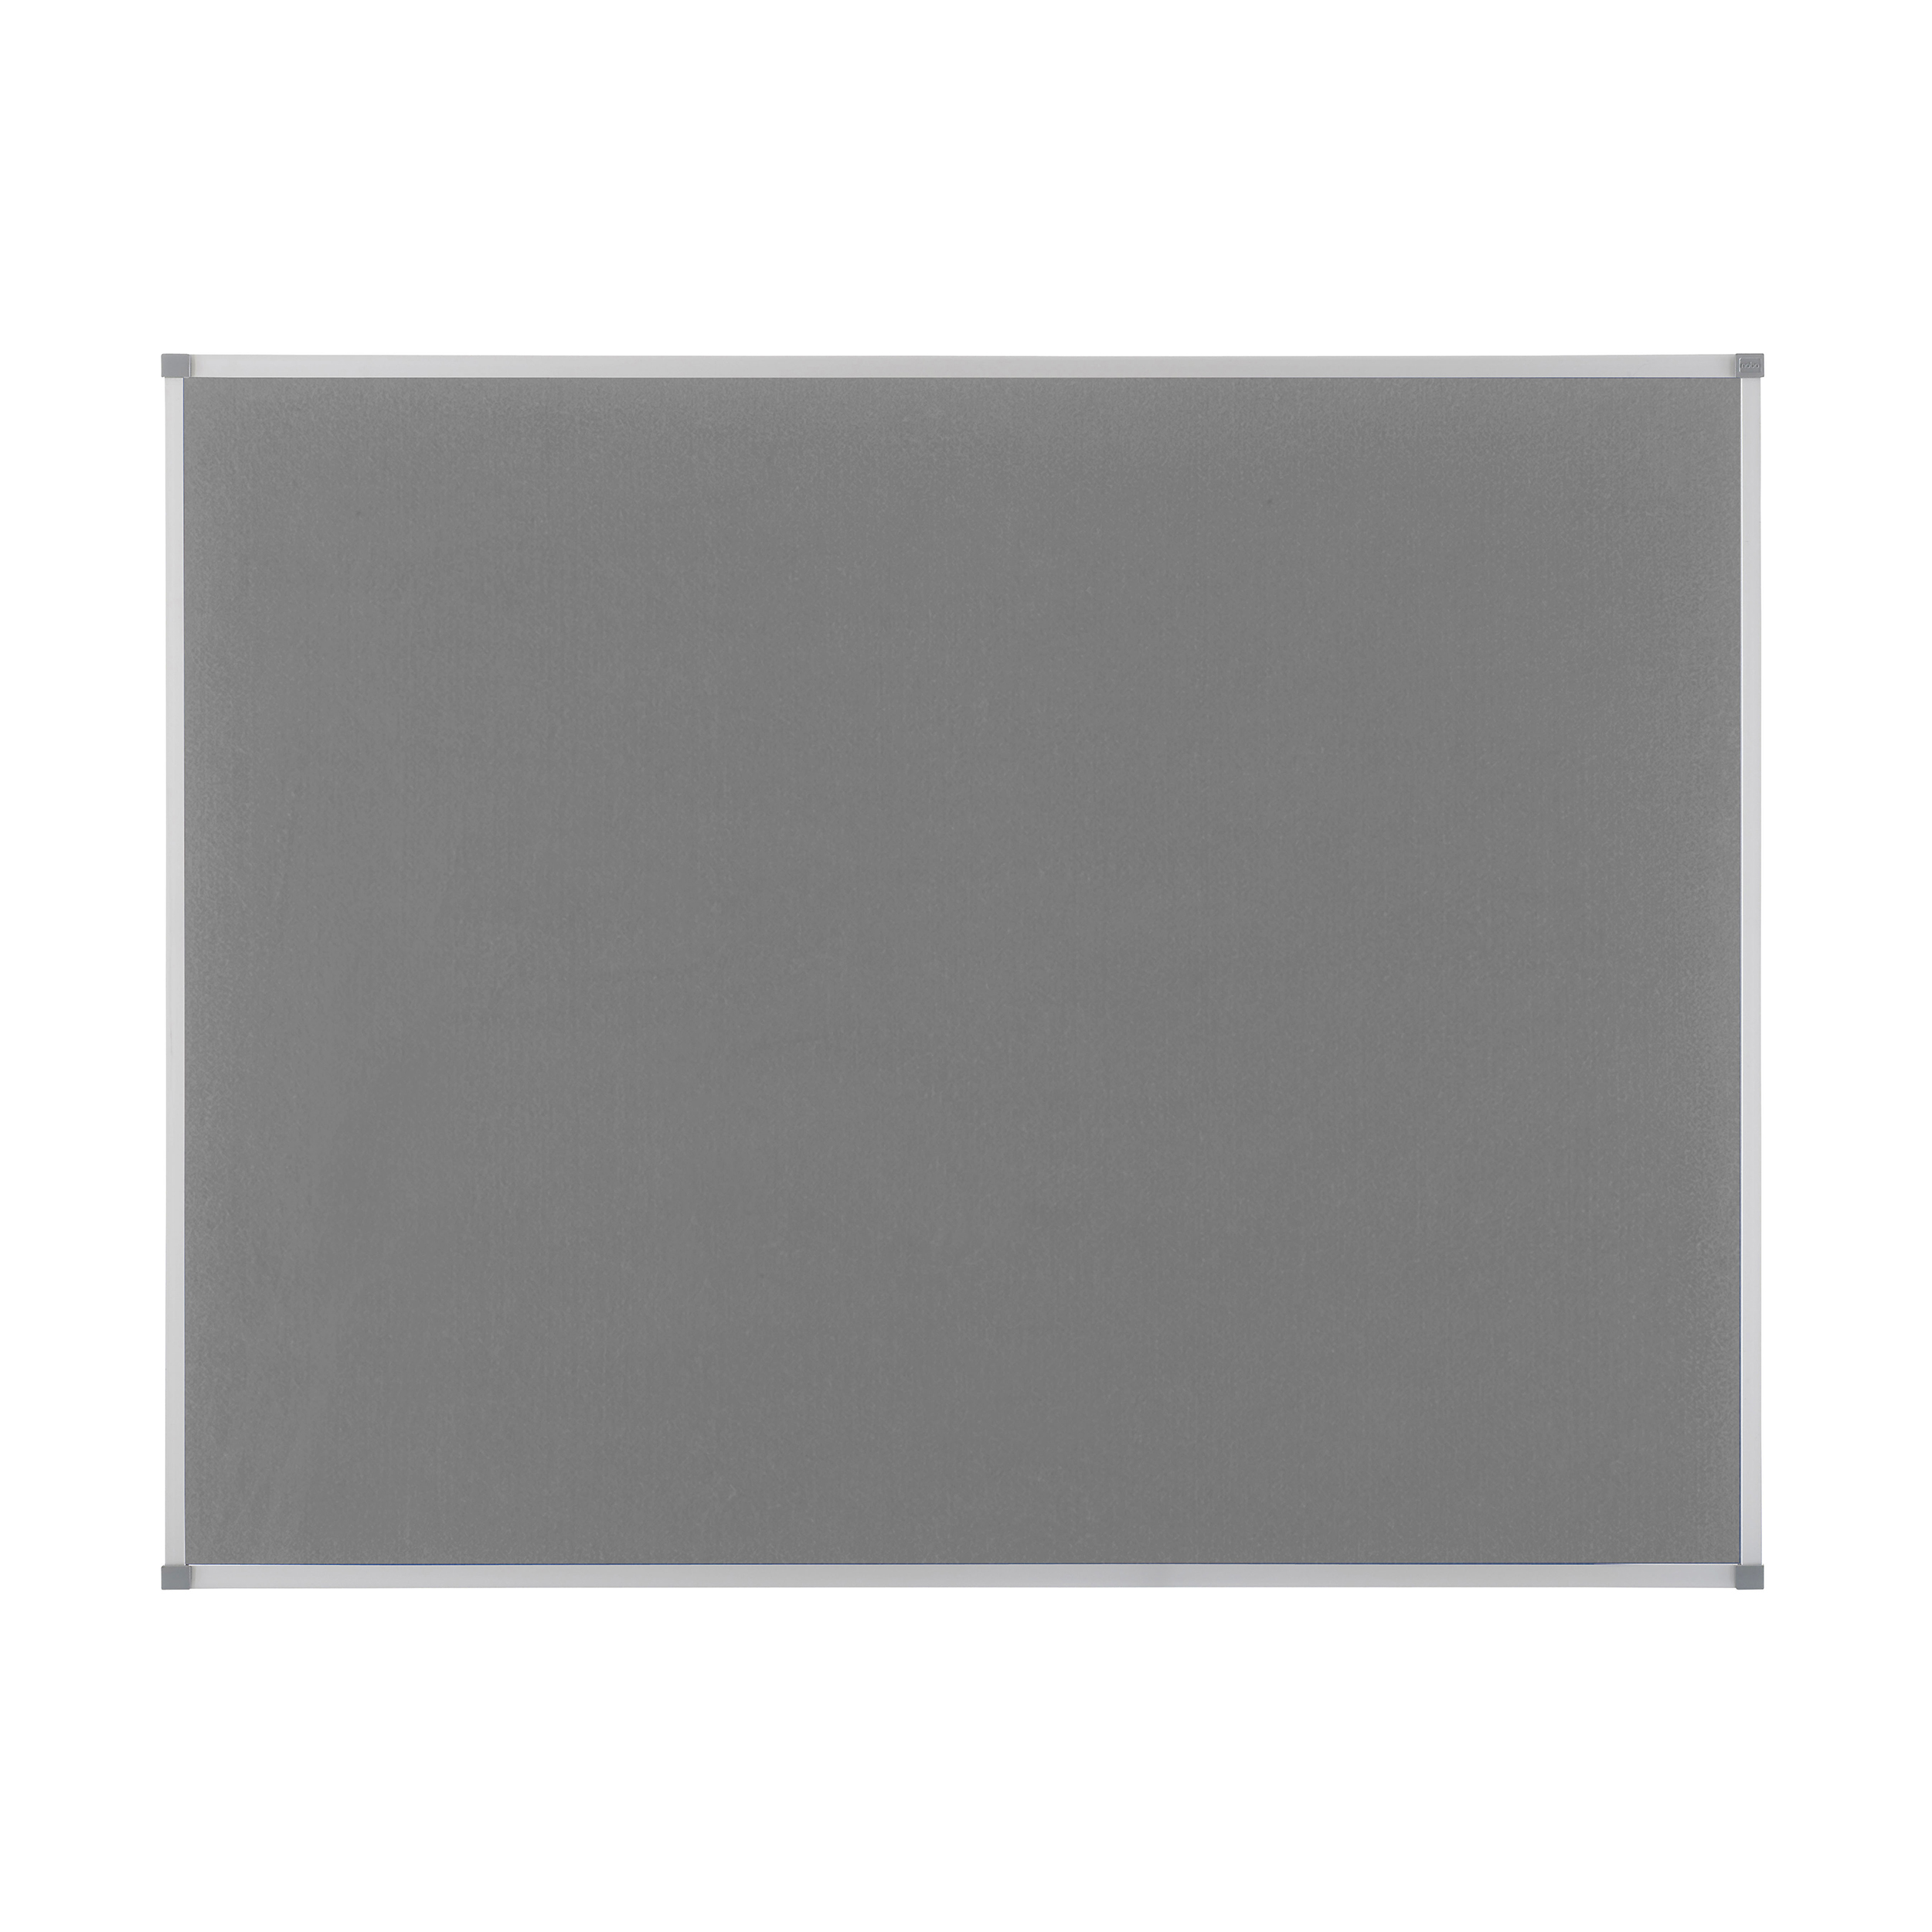 Image for Nobo Classic Noticeboard Felt with Aluminium Frame W900xH600mm Grey Ref 1900911